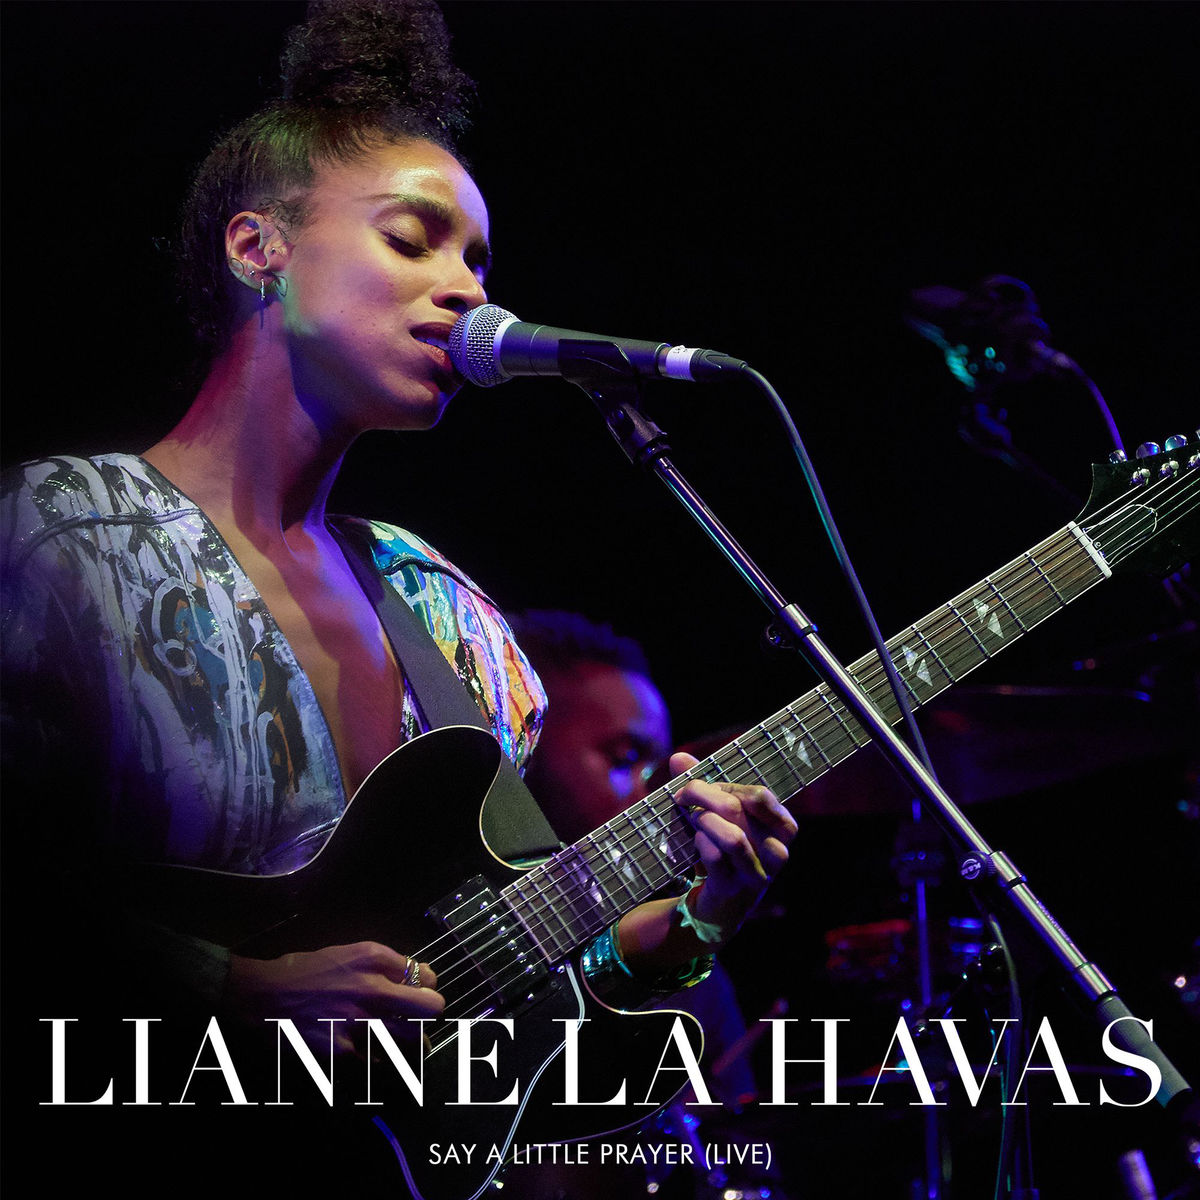 Lianne La Havas Say A Little Prayer Live Lyrics Genius Lyrics